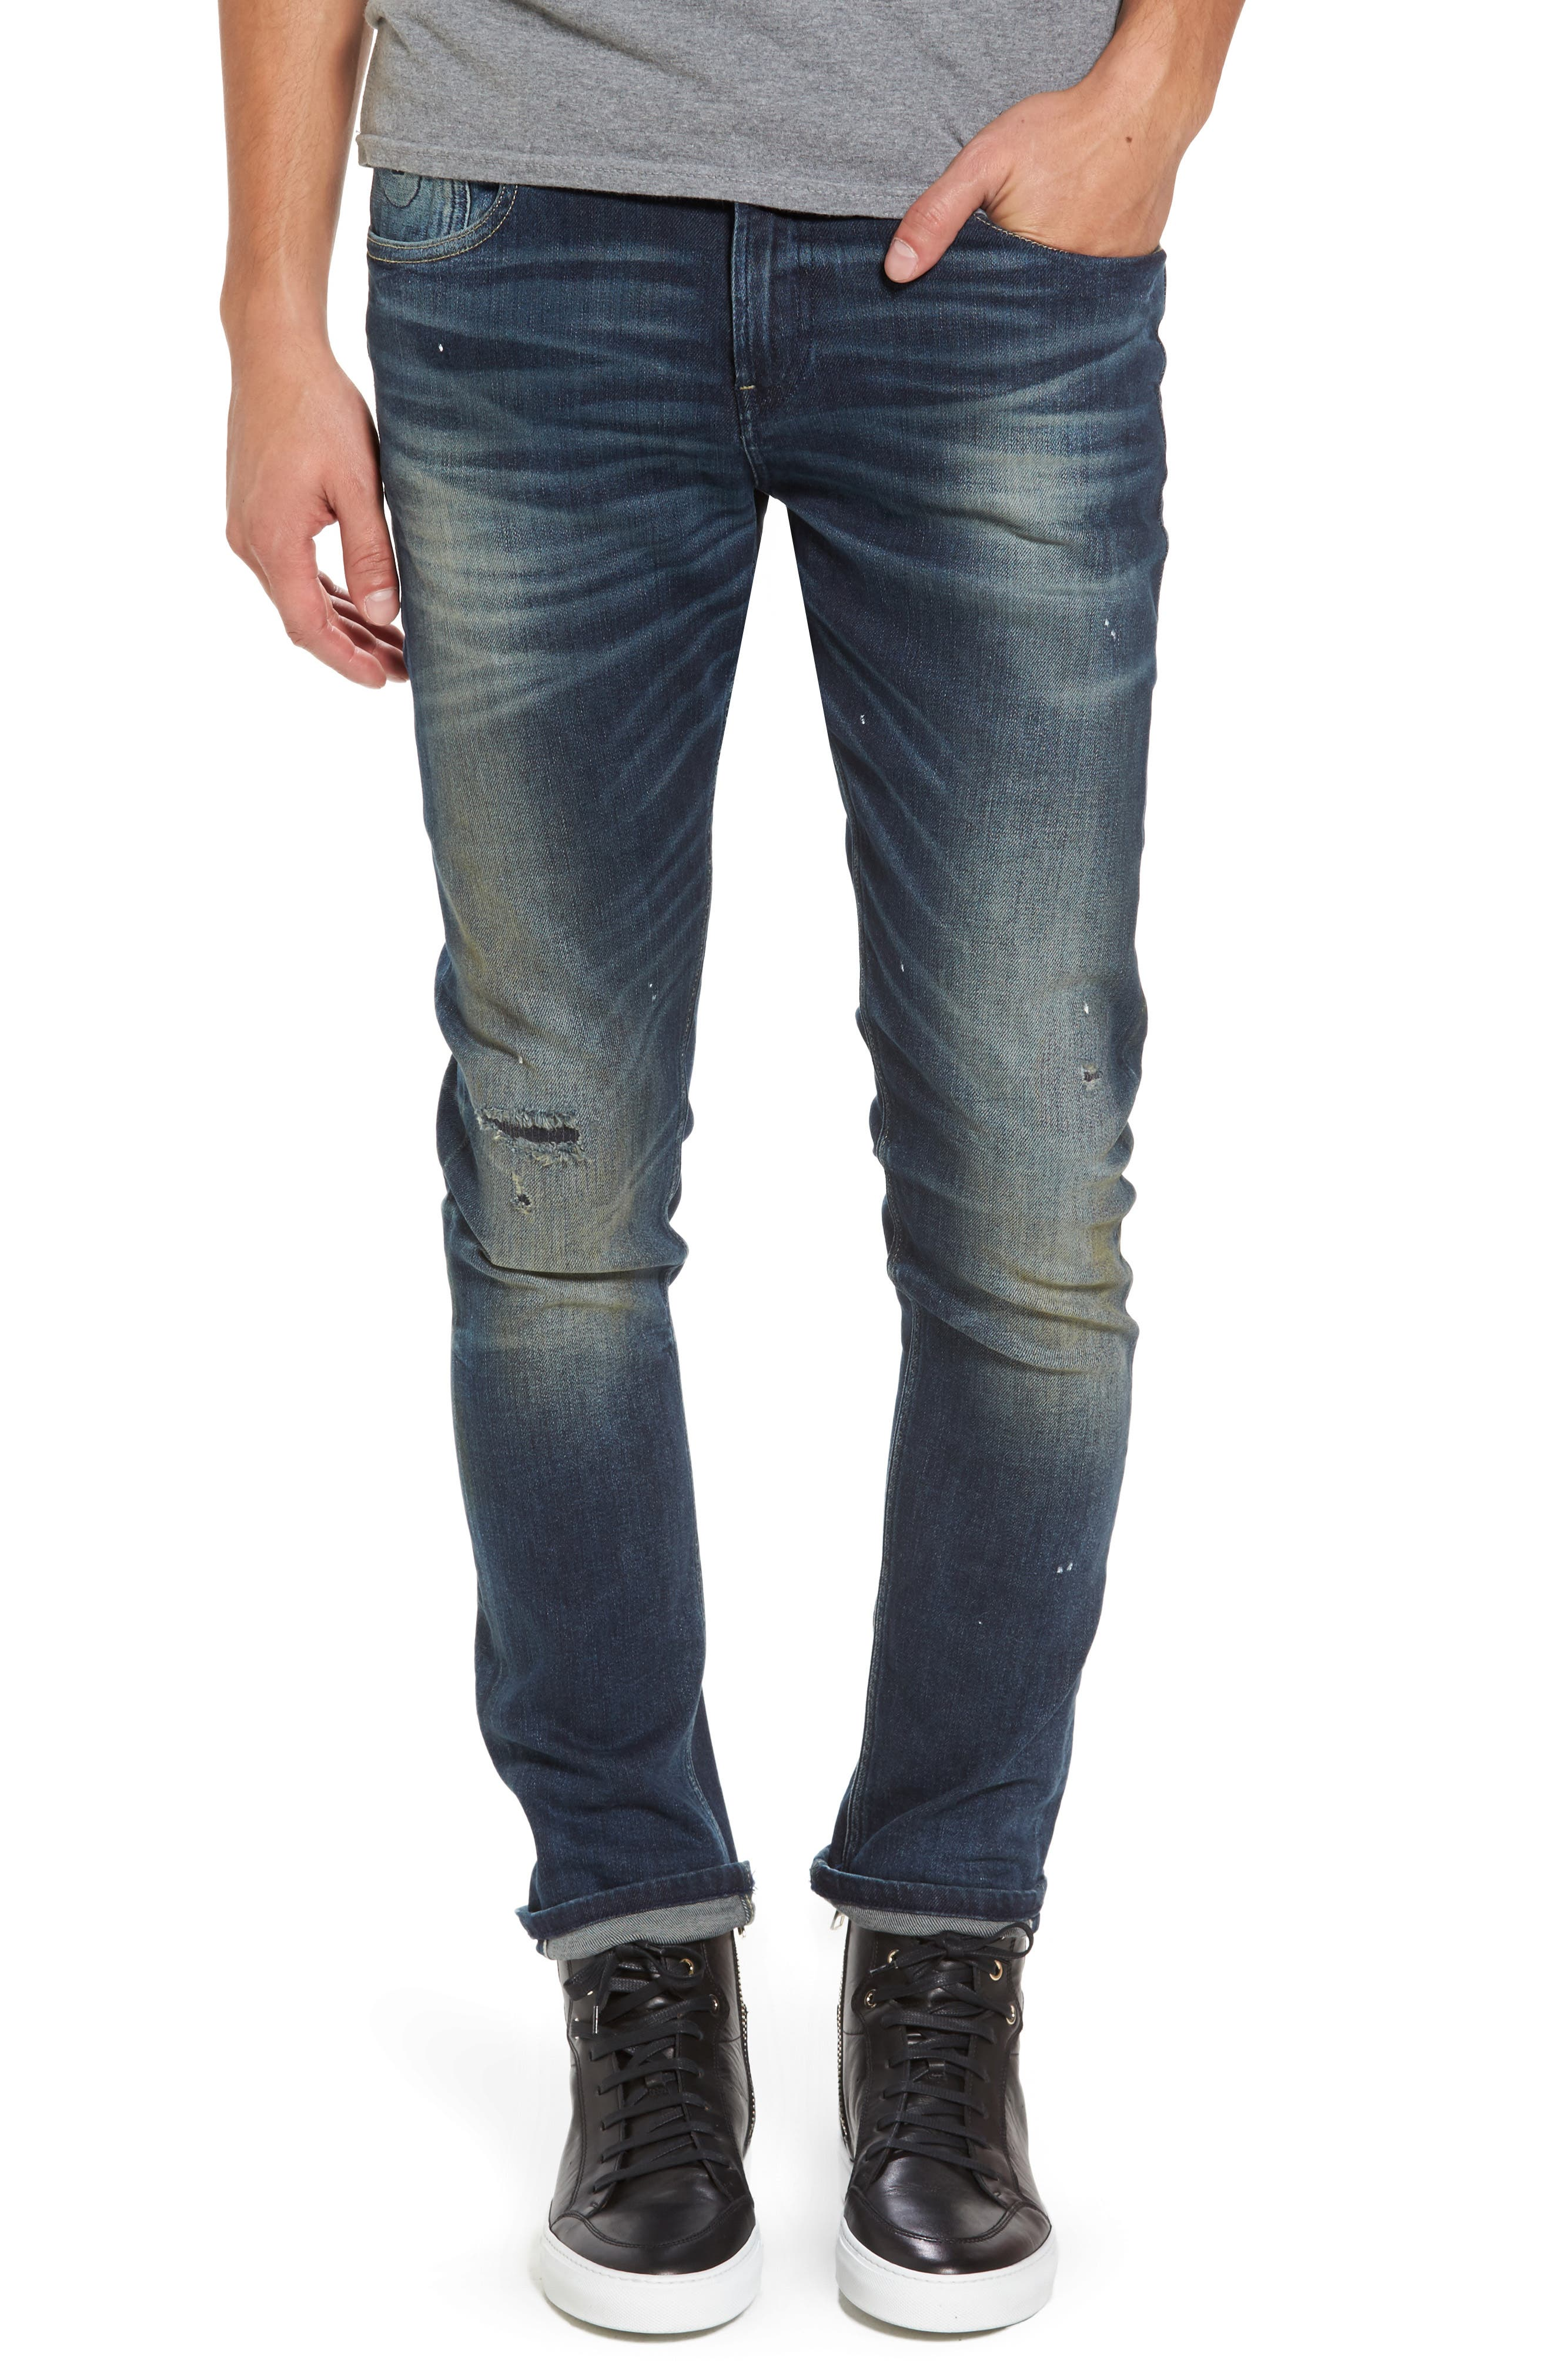 Lot 22 Slim Fit Jeans,                         Main,                         color, Going For Gold